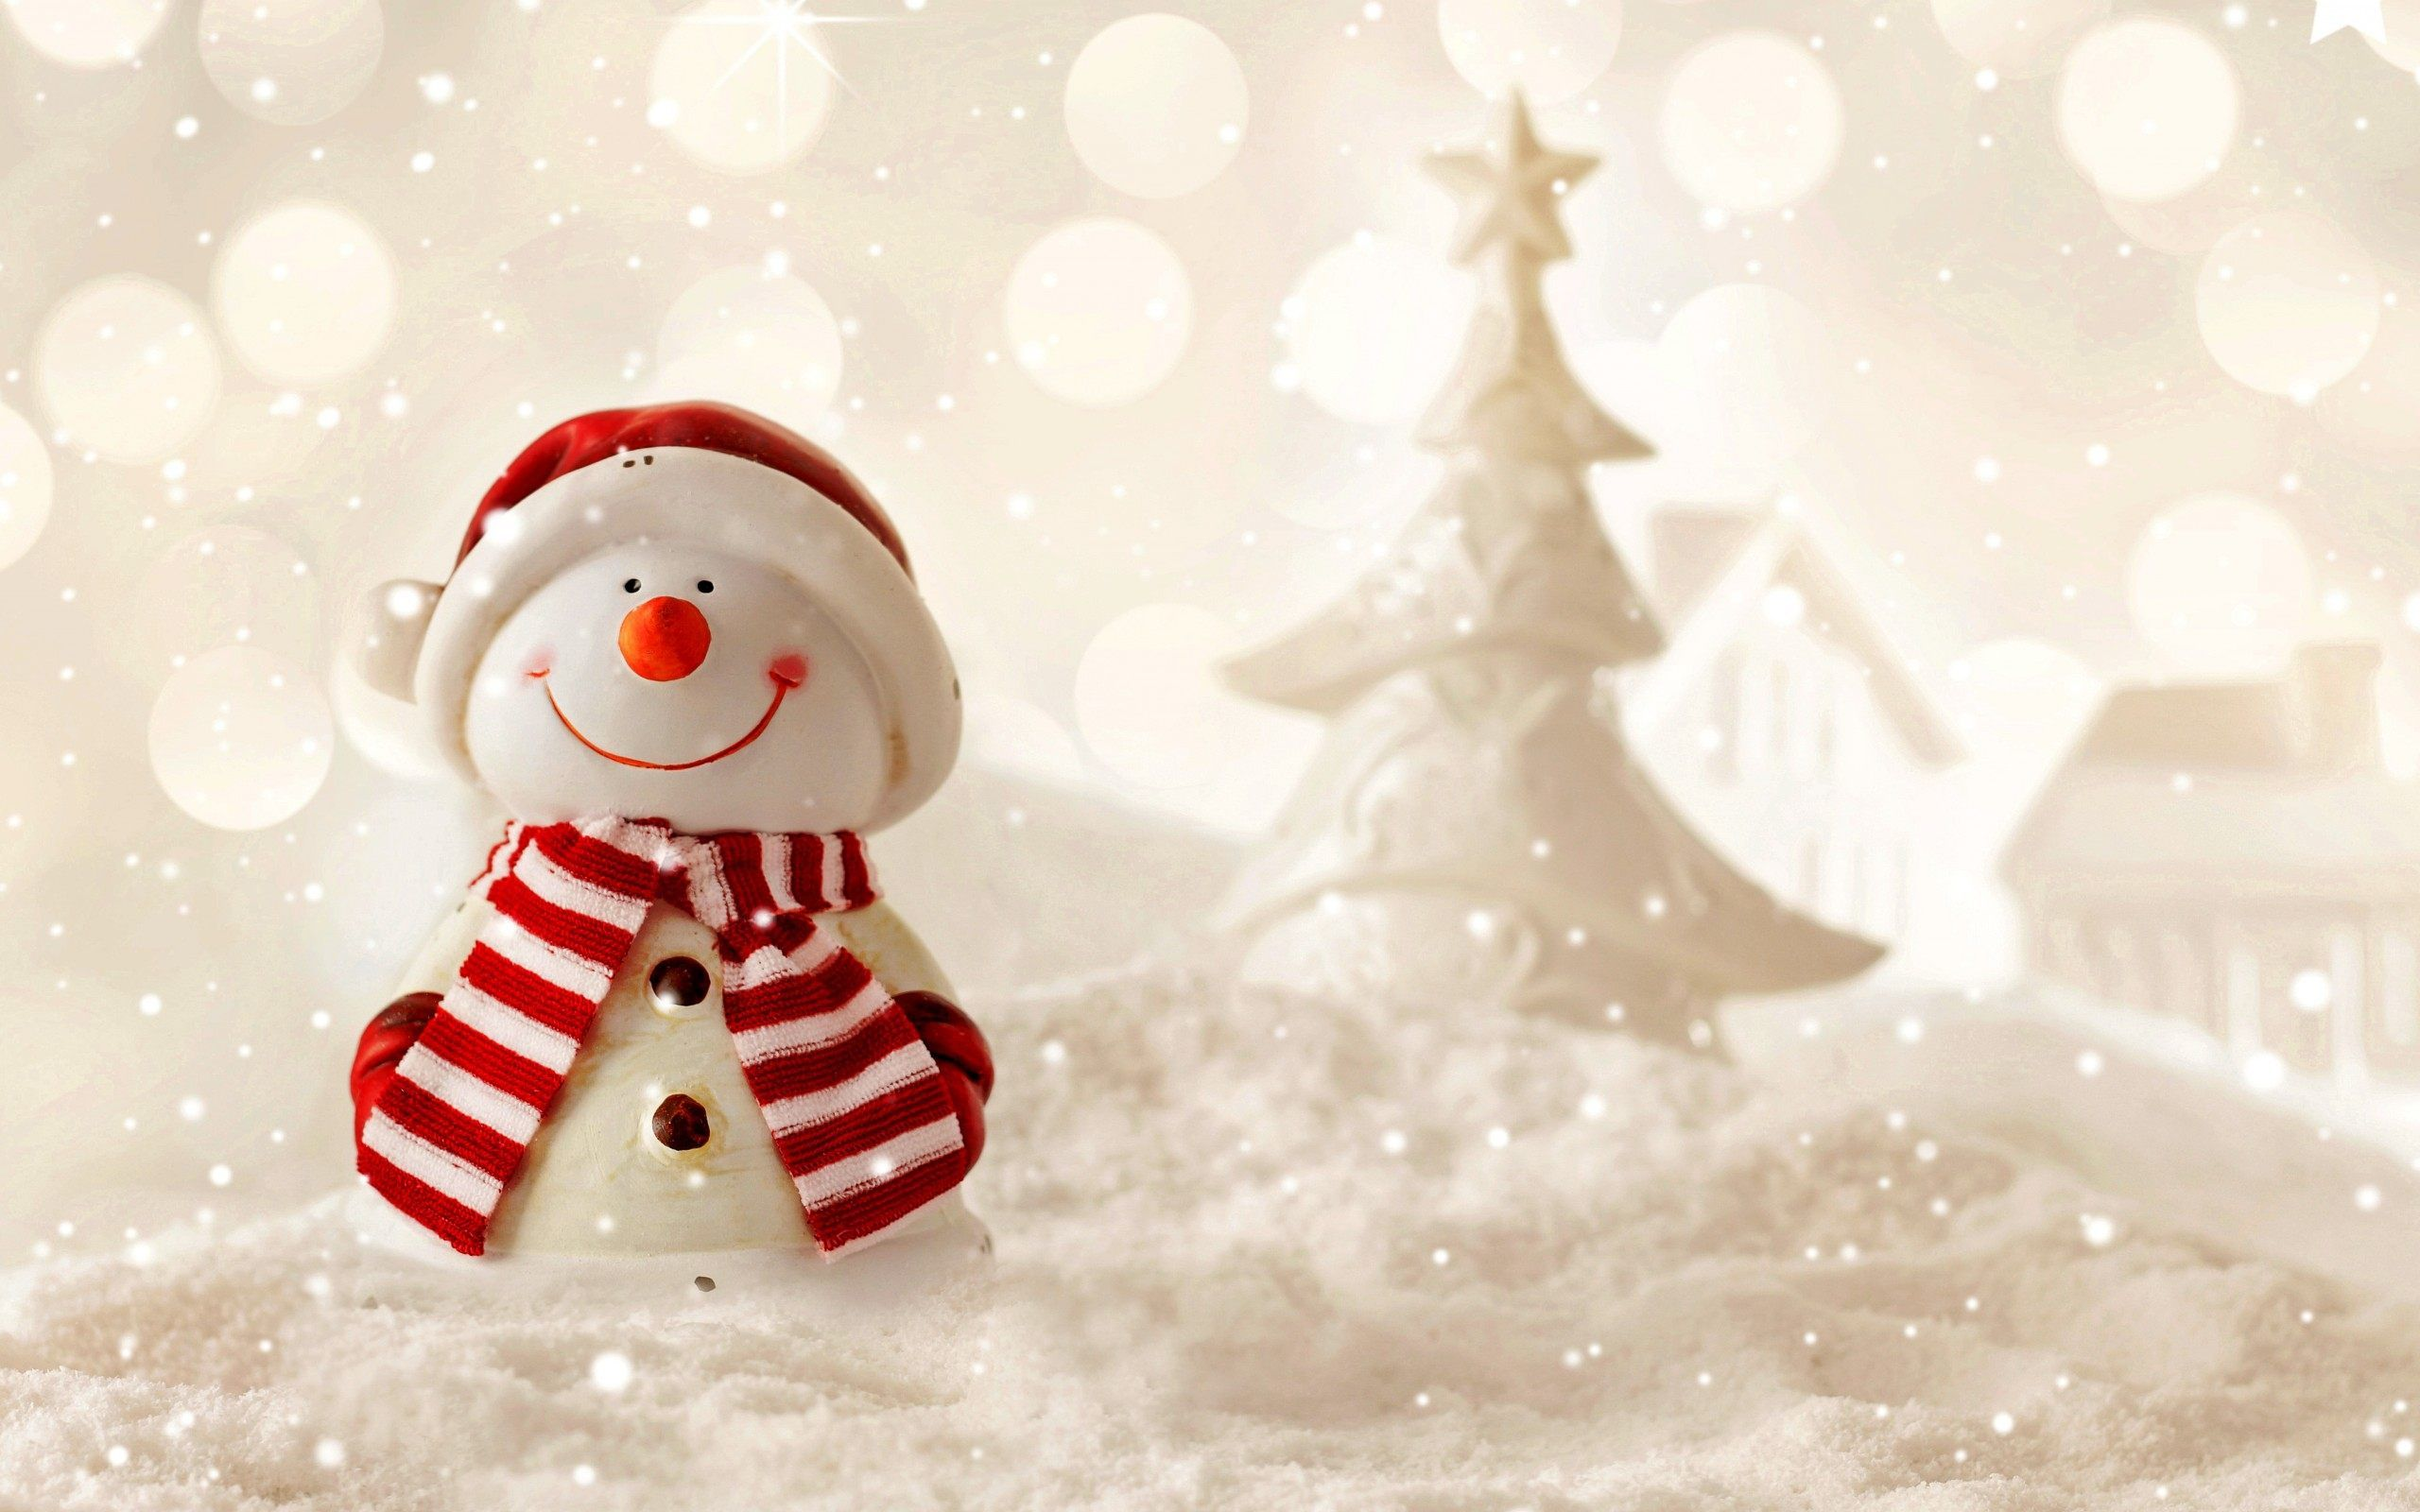 Snowman Wallpaper For Desktop Laptop Mobile In High Resolution Download We Have Best Collection Of Cute Hd And Widescreen Resolutions